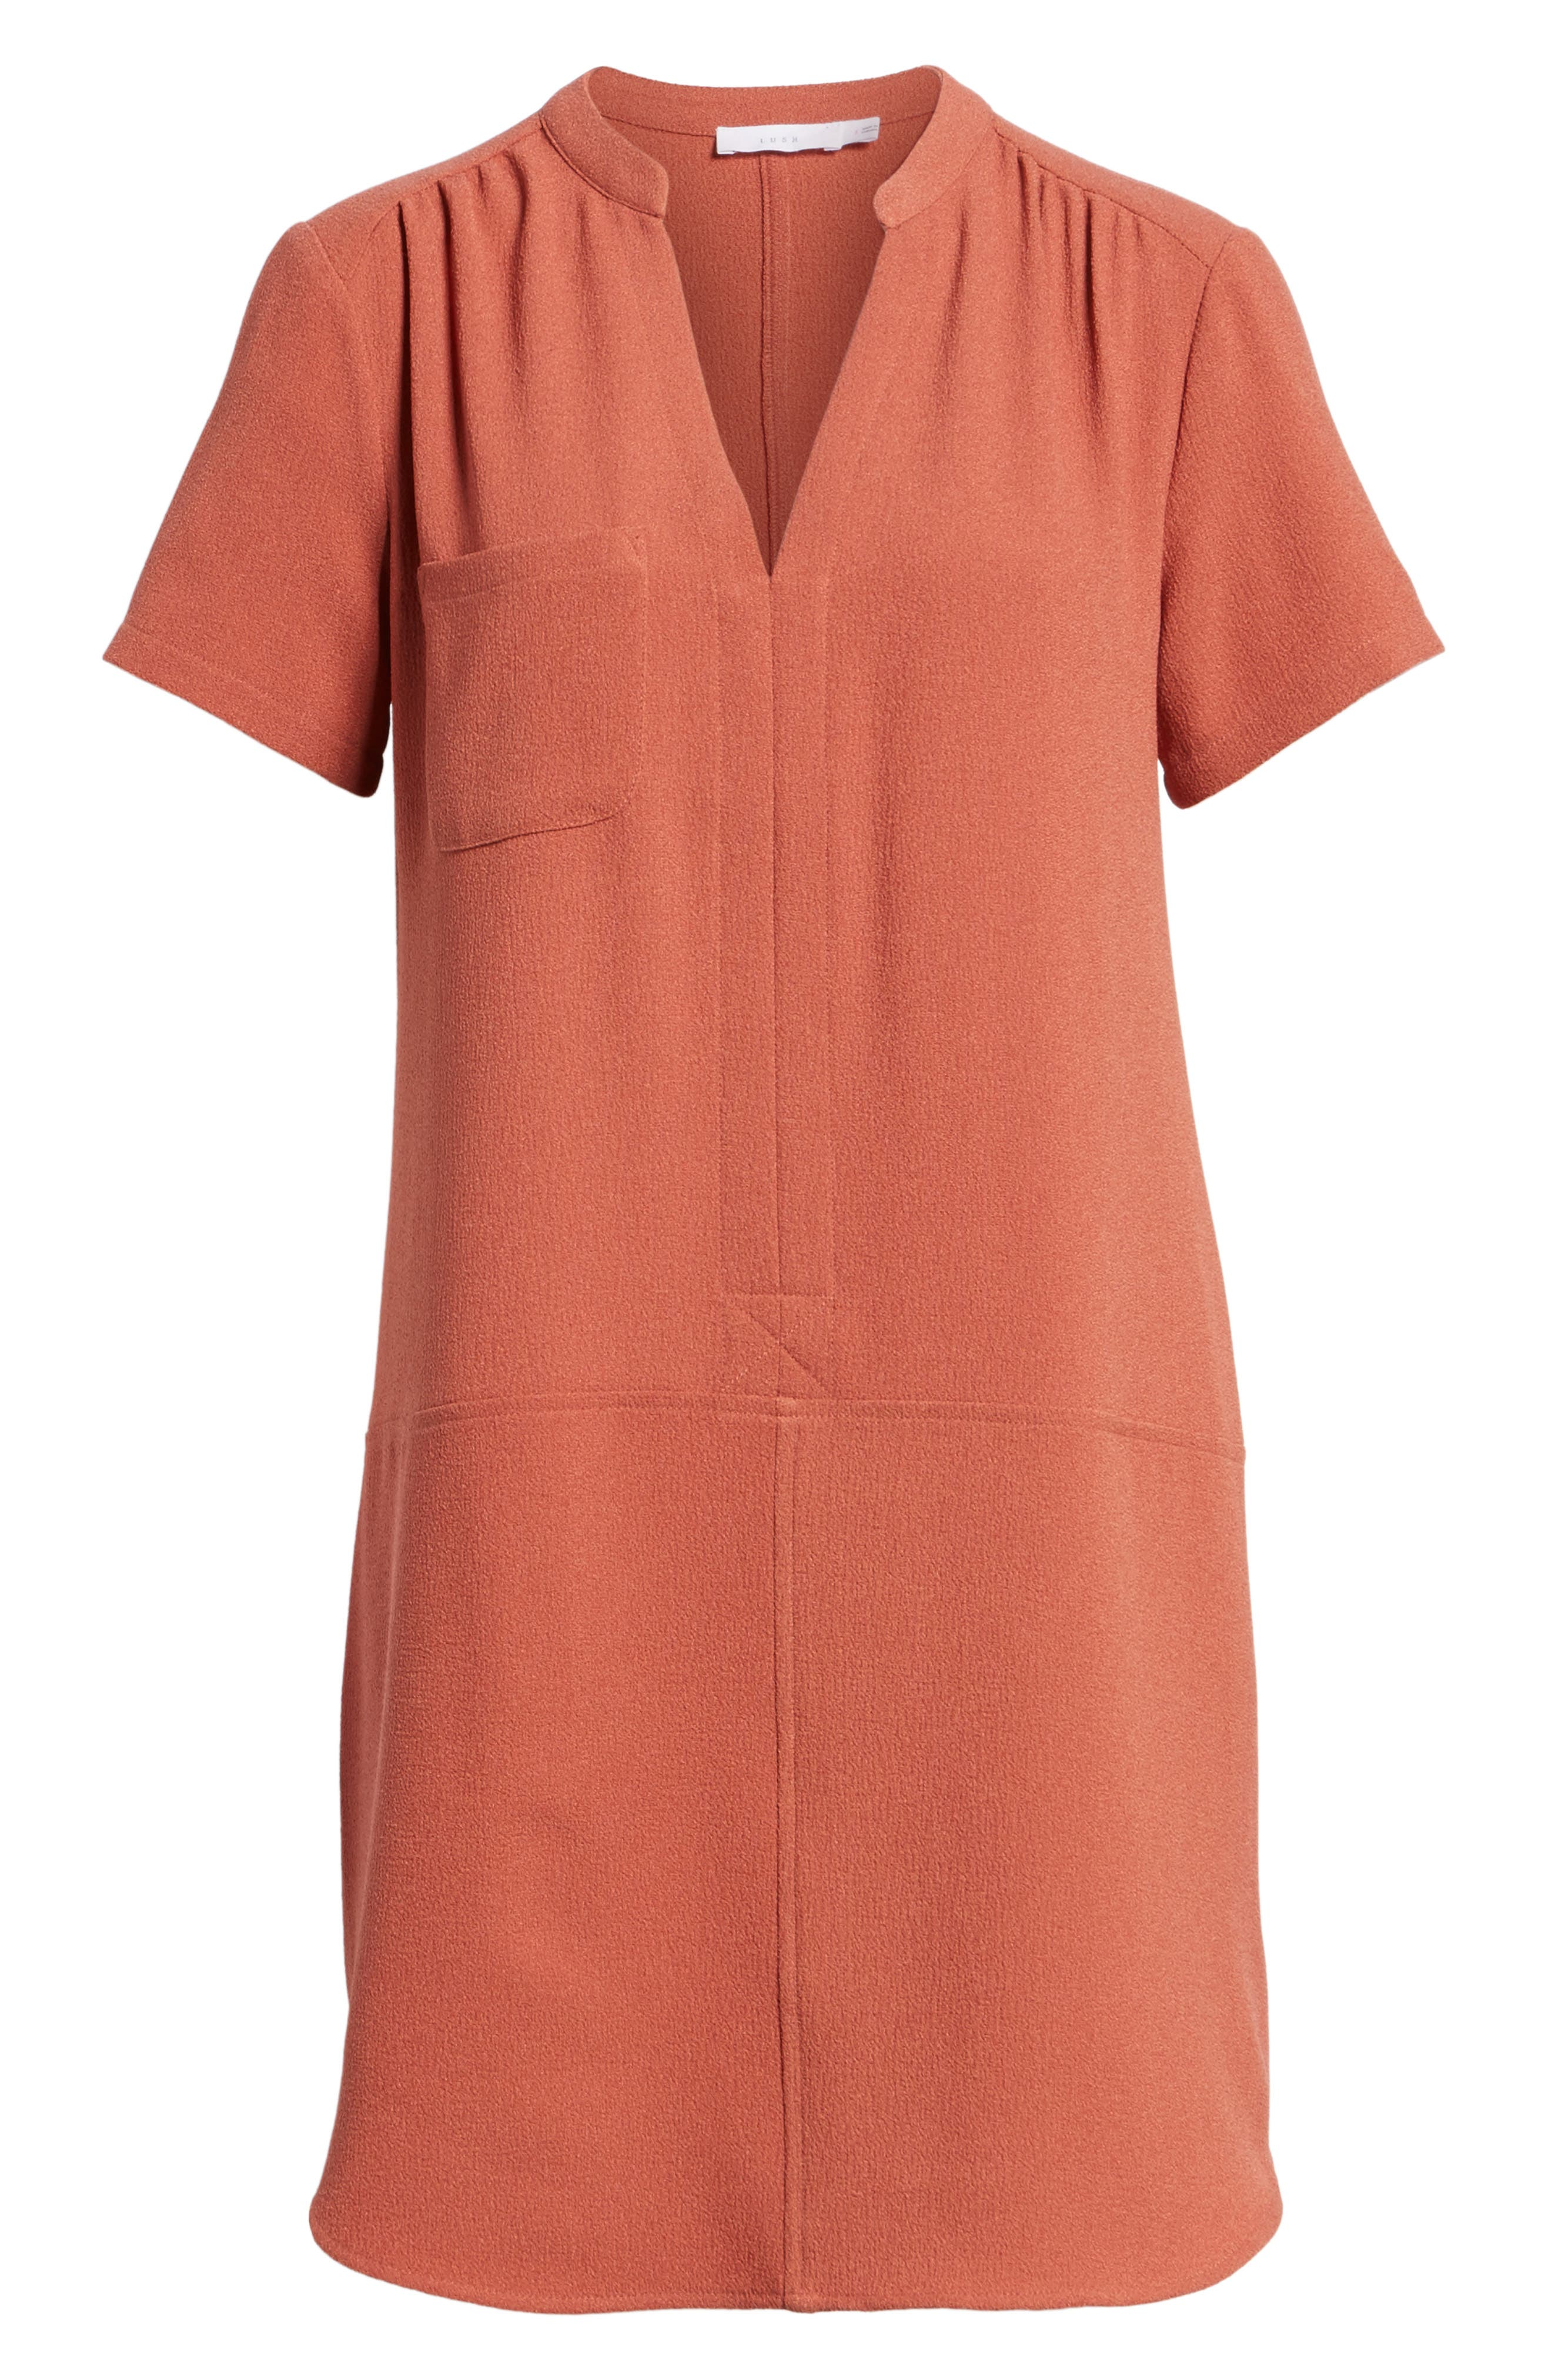 Hailey Crepe Dress,                             Alternate thumbnail 4, color,                             Rust Marsala